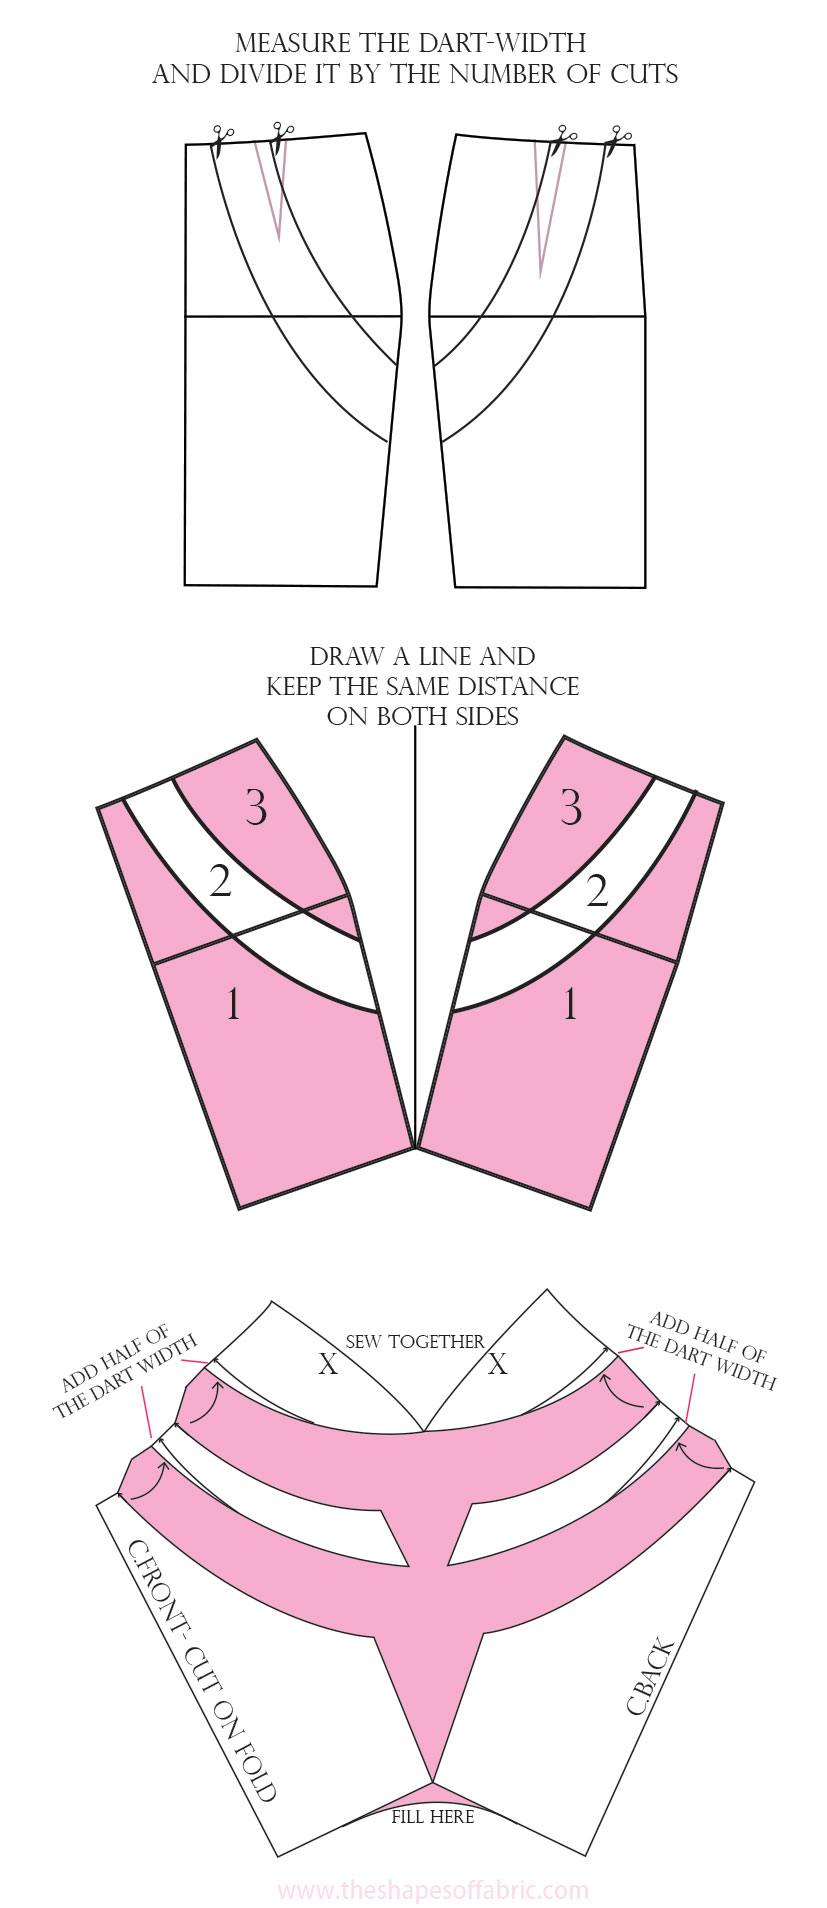 Peg Top Draped Skirt Pattern The Shapes Of Fabric